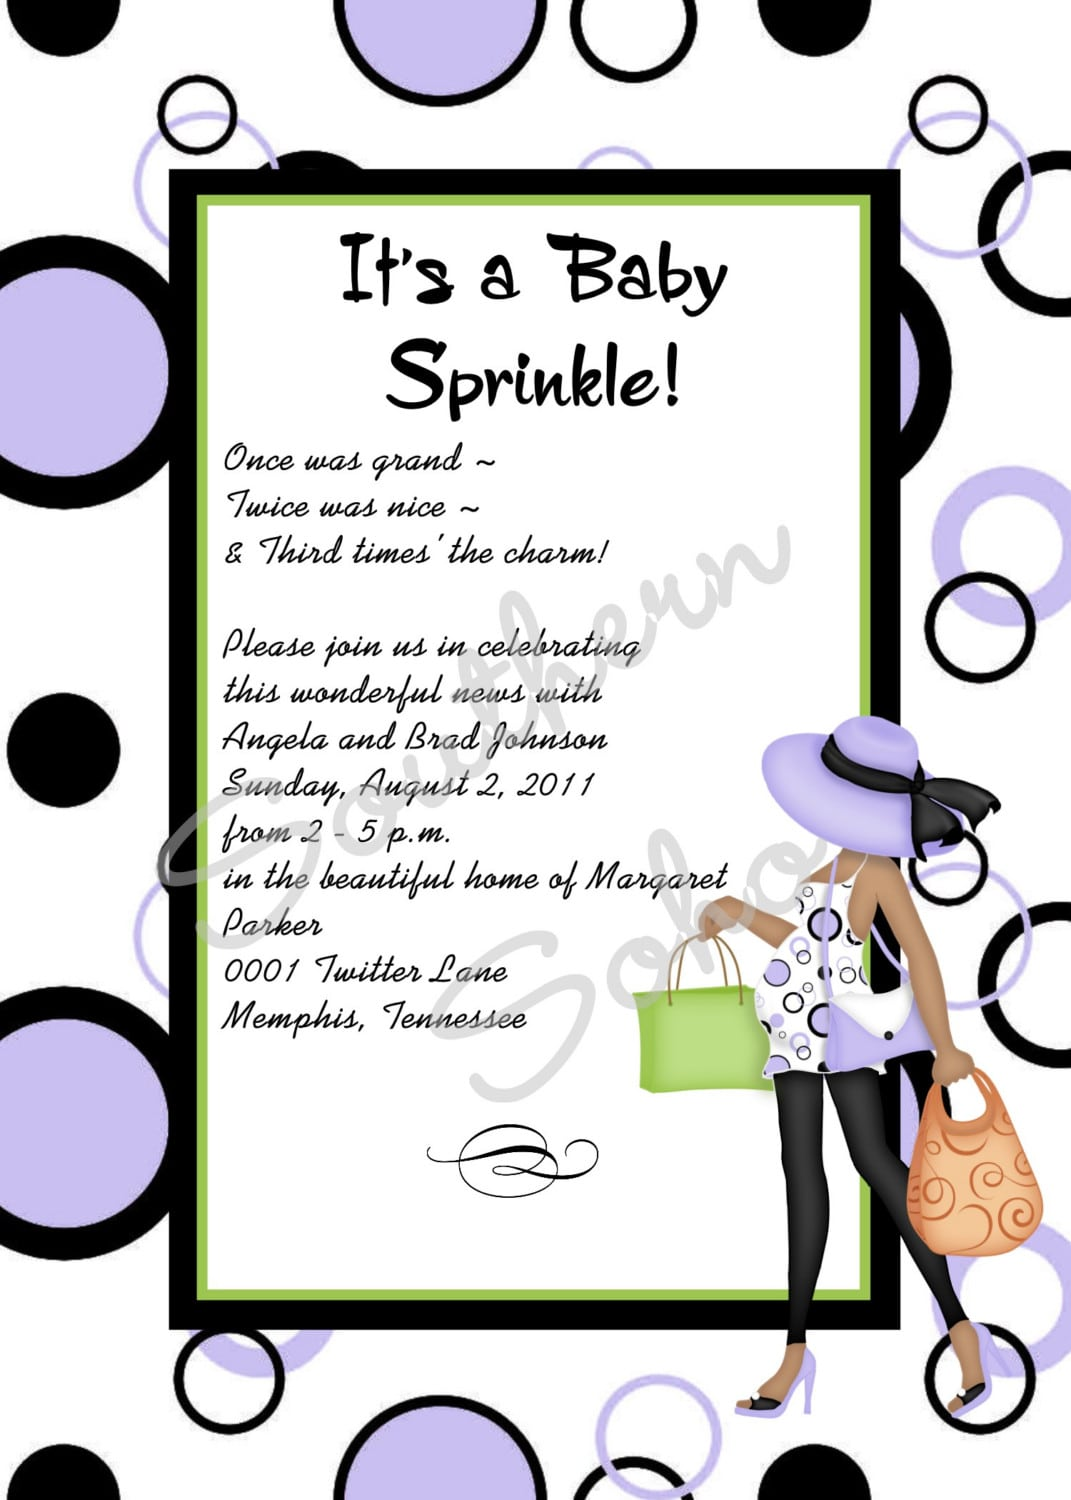 Baby Sprinkle Invitations Wording 0nQGdP6E